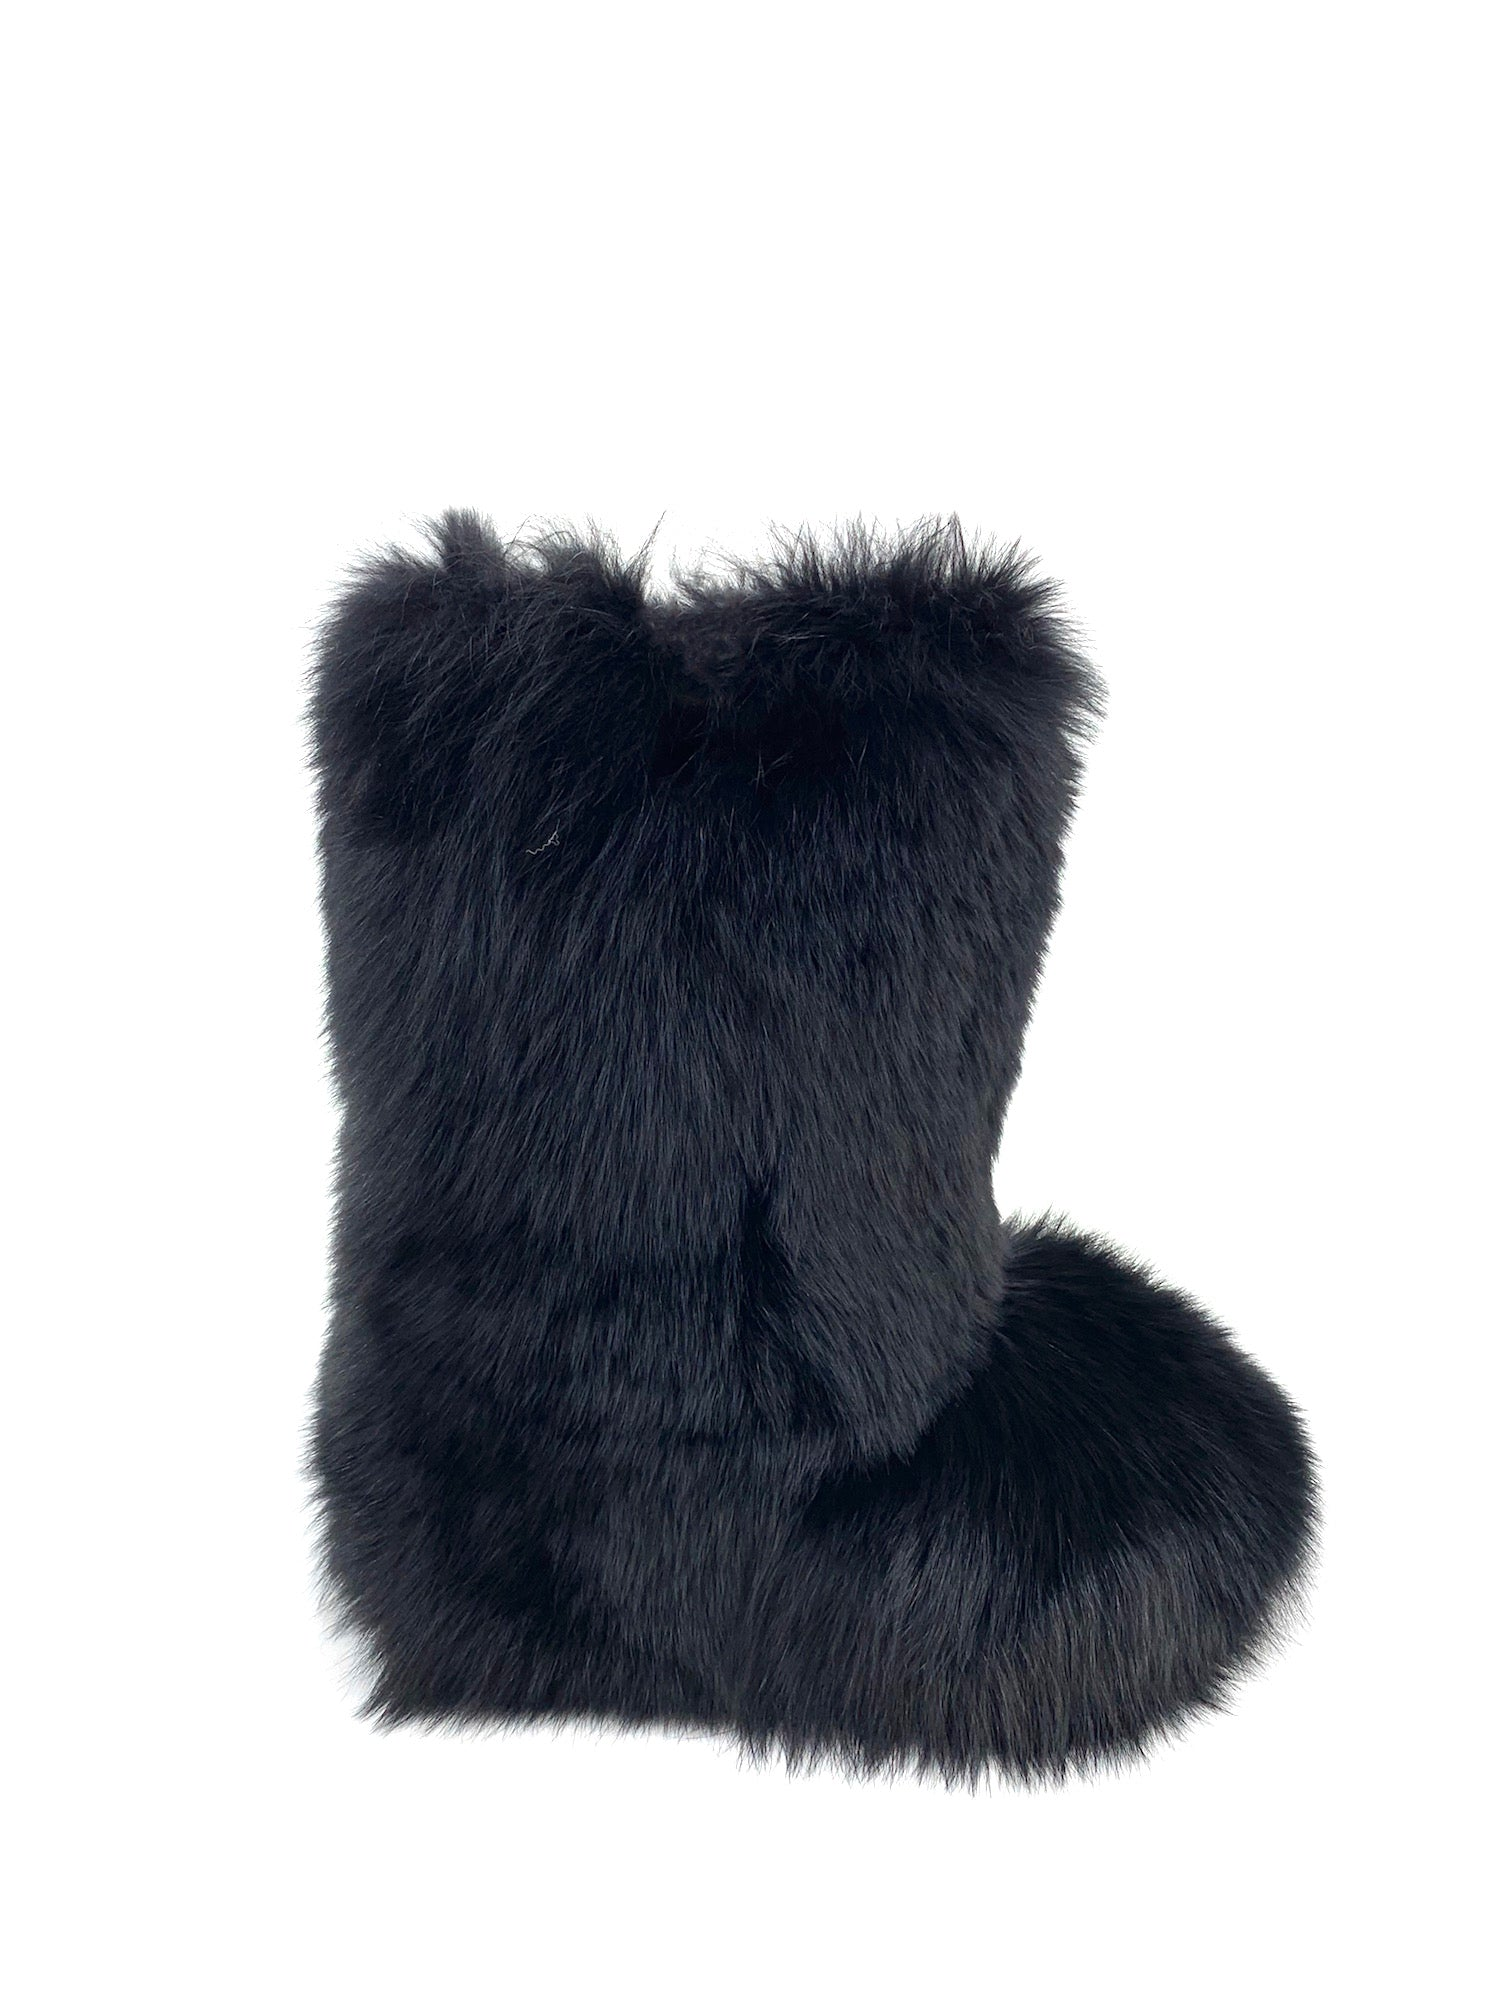 Dyed Black Fox Boots